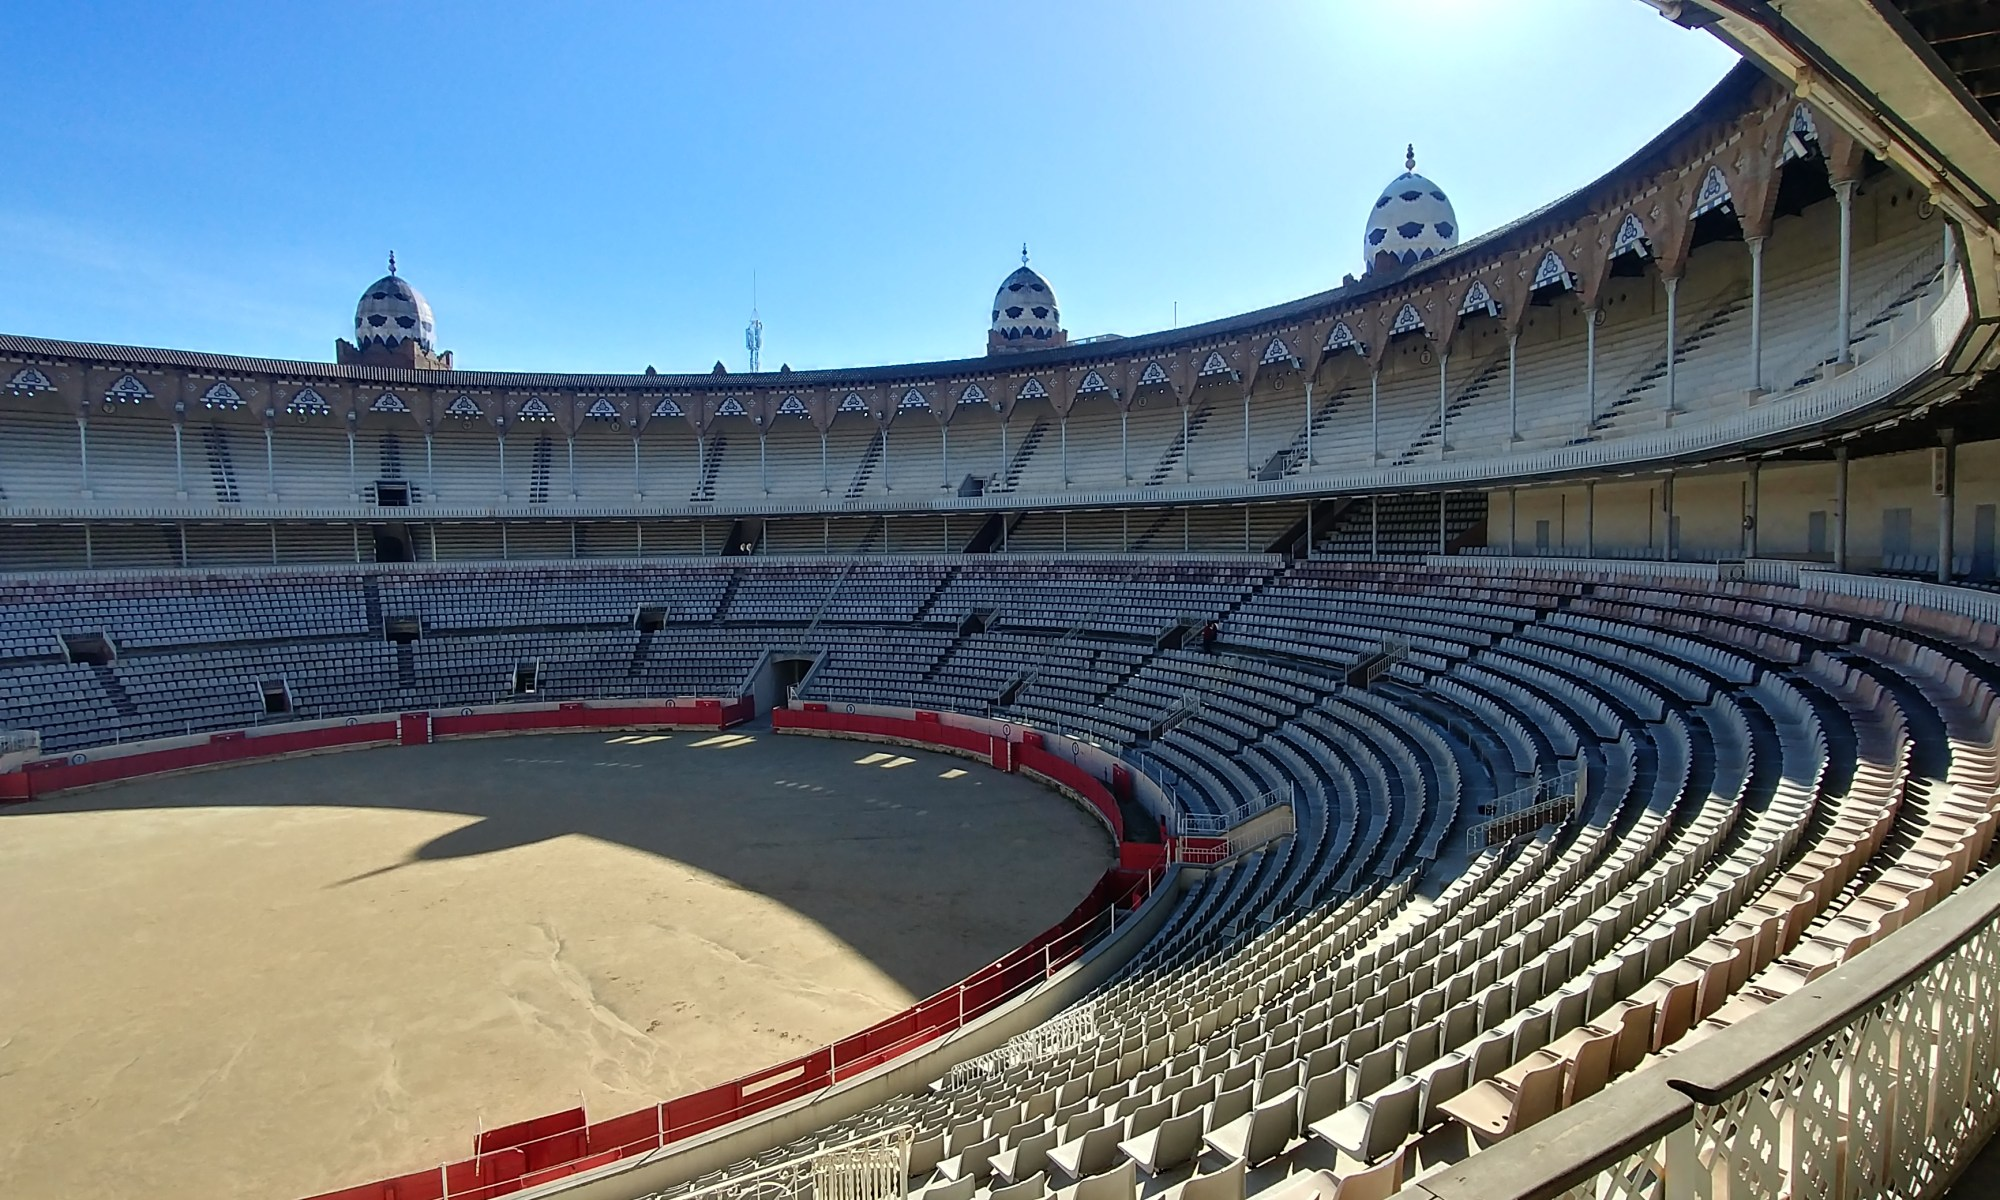 Barcelona, Spain – February 5, 2020: Arena and bullfighting ring bleachers in La Monumental.